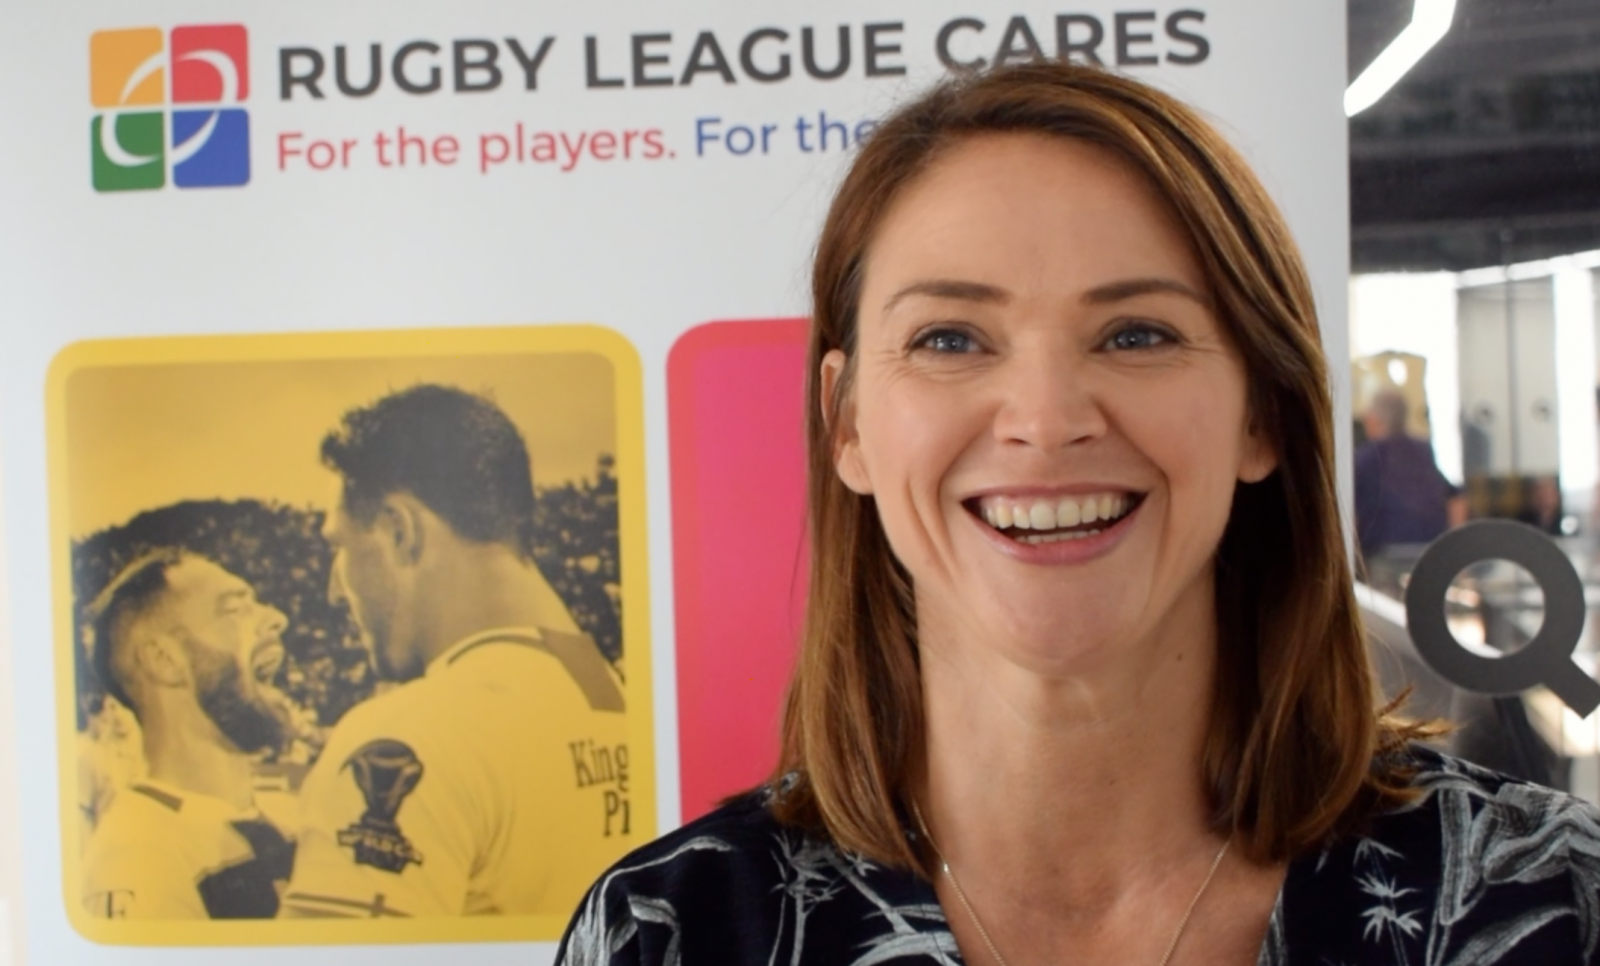 Rugby League celebrates National Sporting Heritage Day